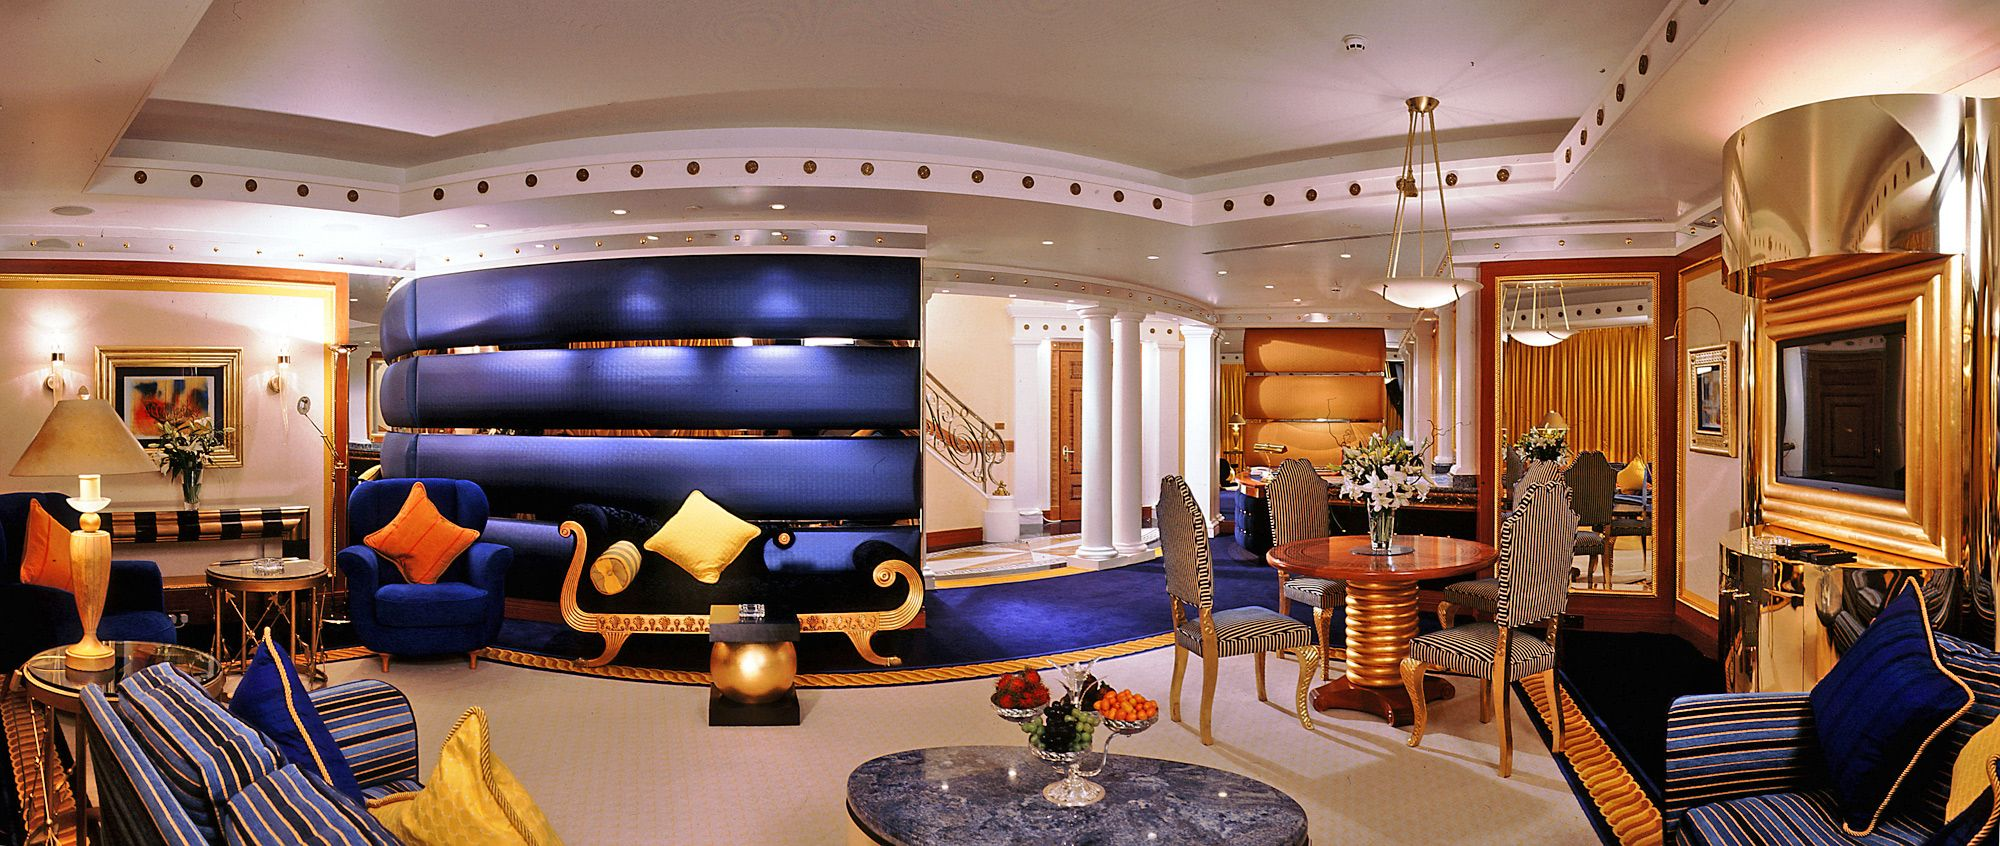 Burj Al Arab The World S Only 7 Star Hotel Hotel Interiors Most Luxurious Hotels Dubai Hotel